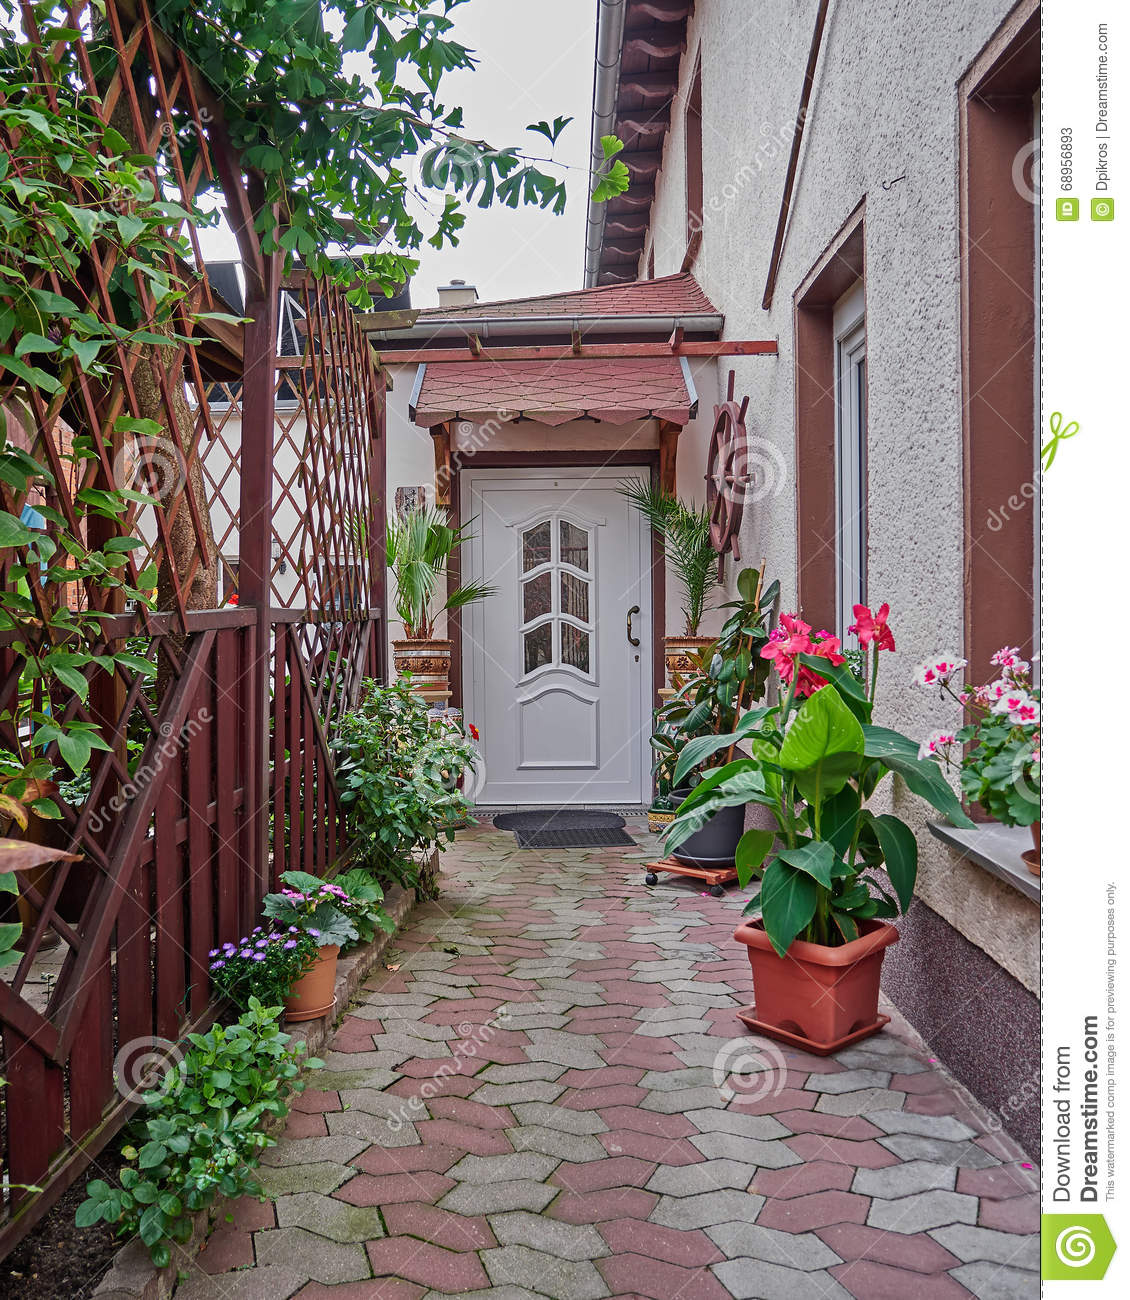 House Entrance With Flowers And Plants Stock Image Image